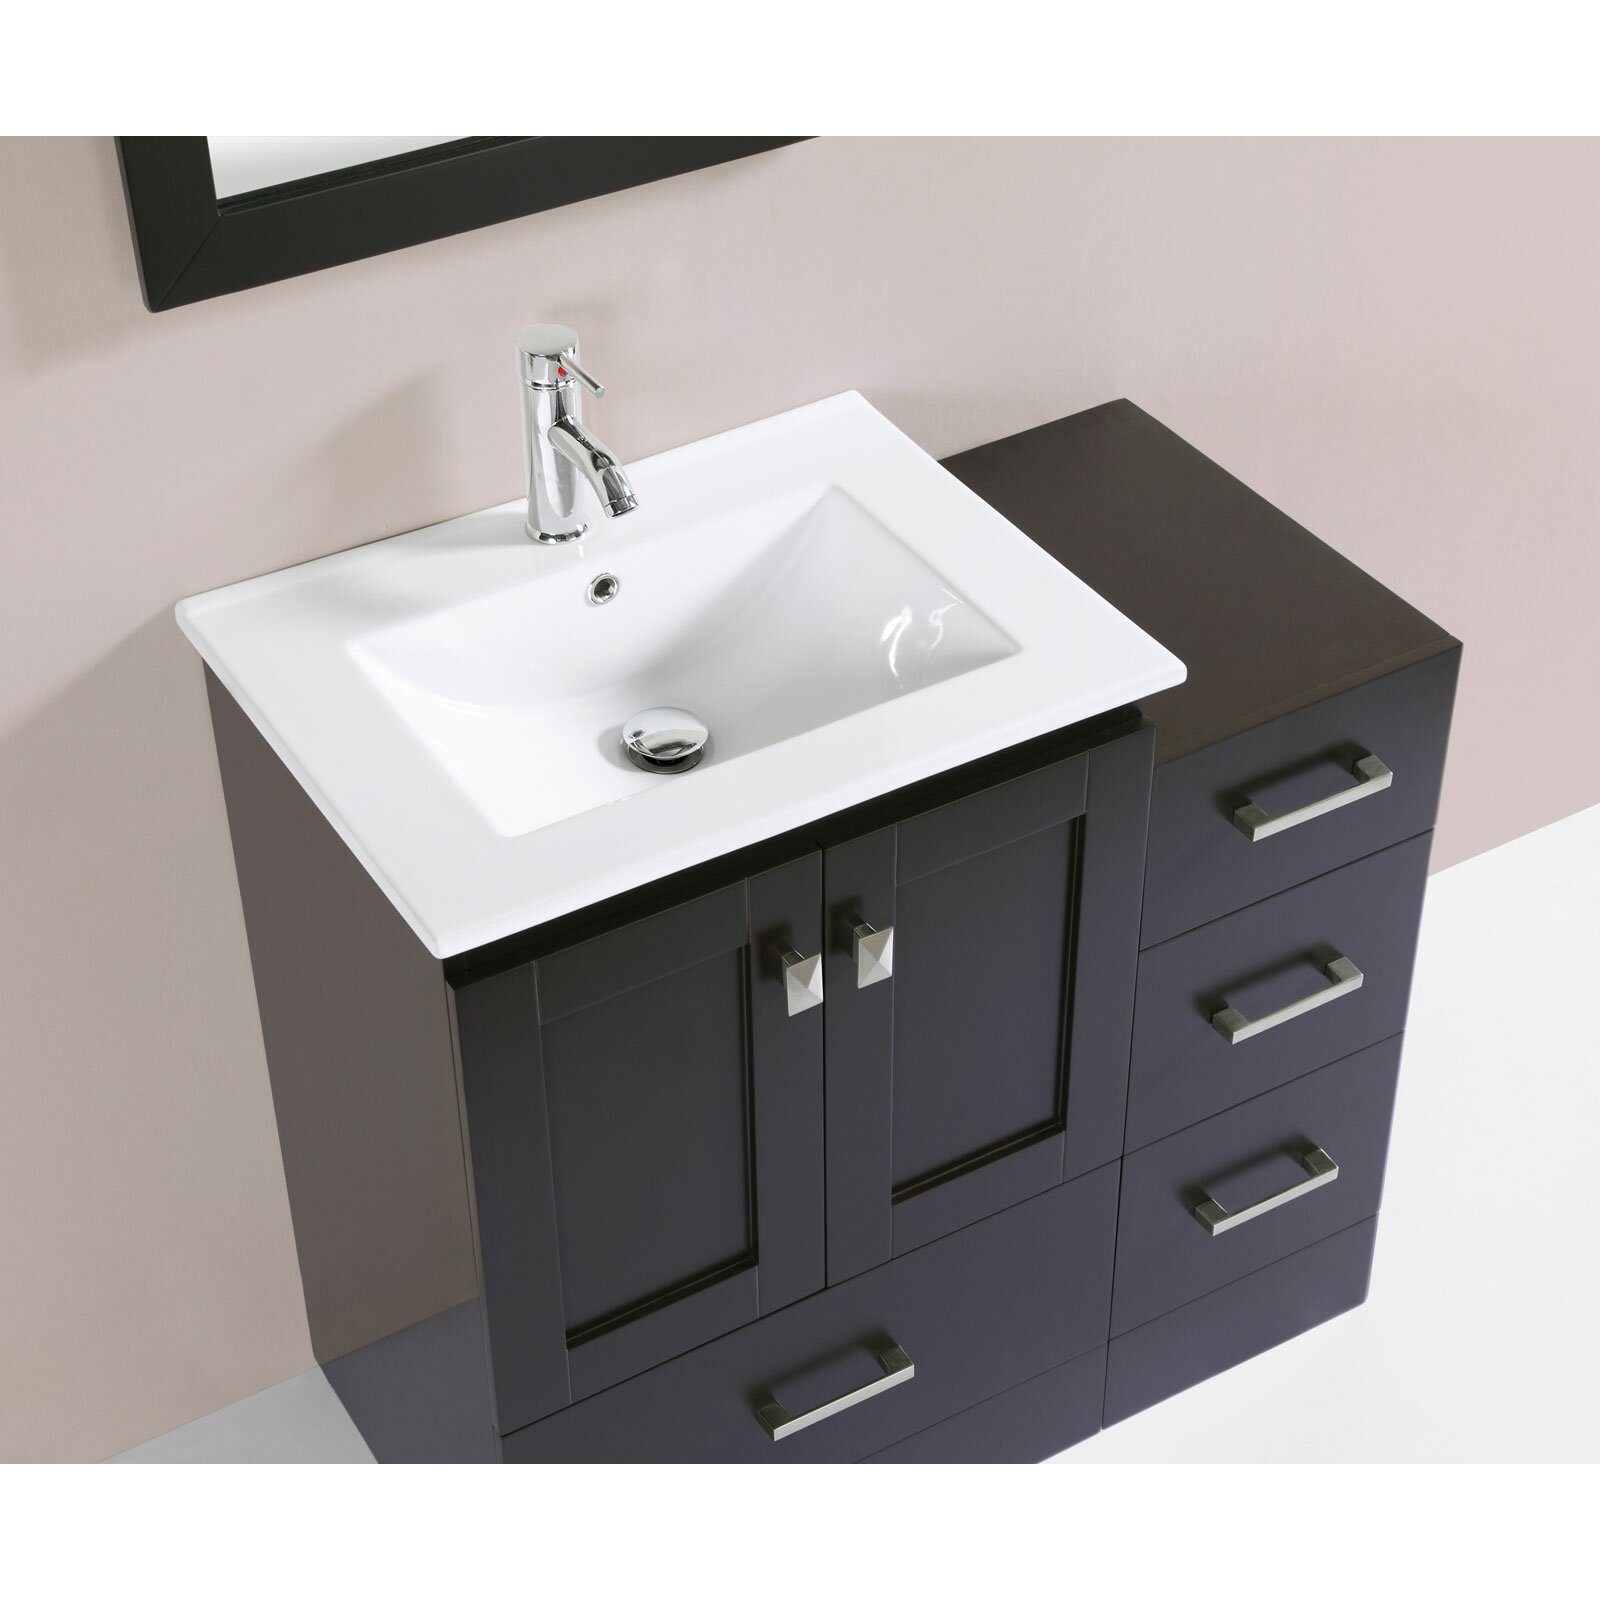 redondo 36 single modern bathroom side cabinet vanity set with mirror